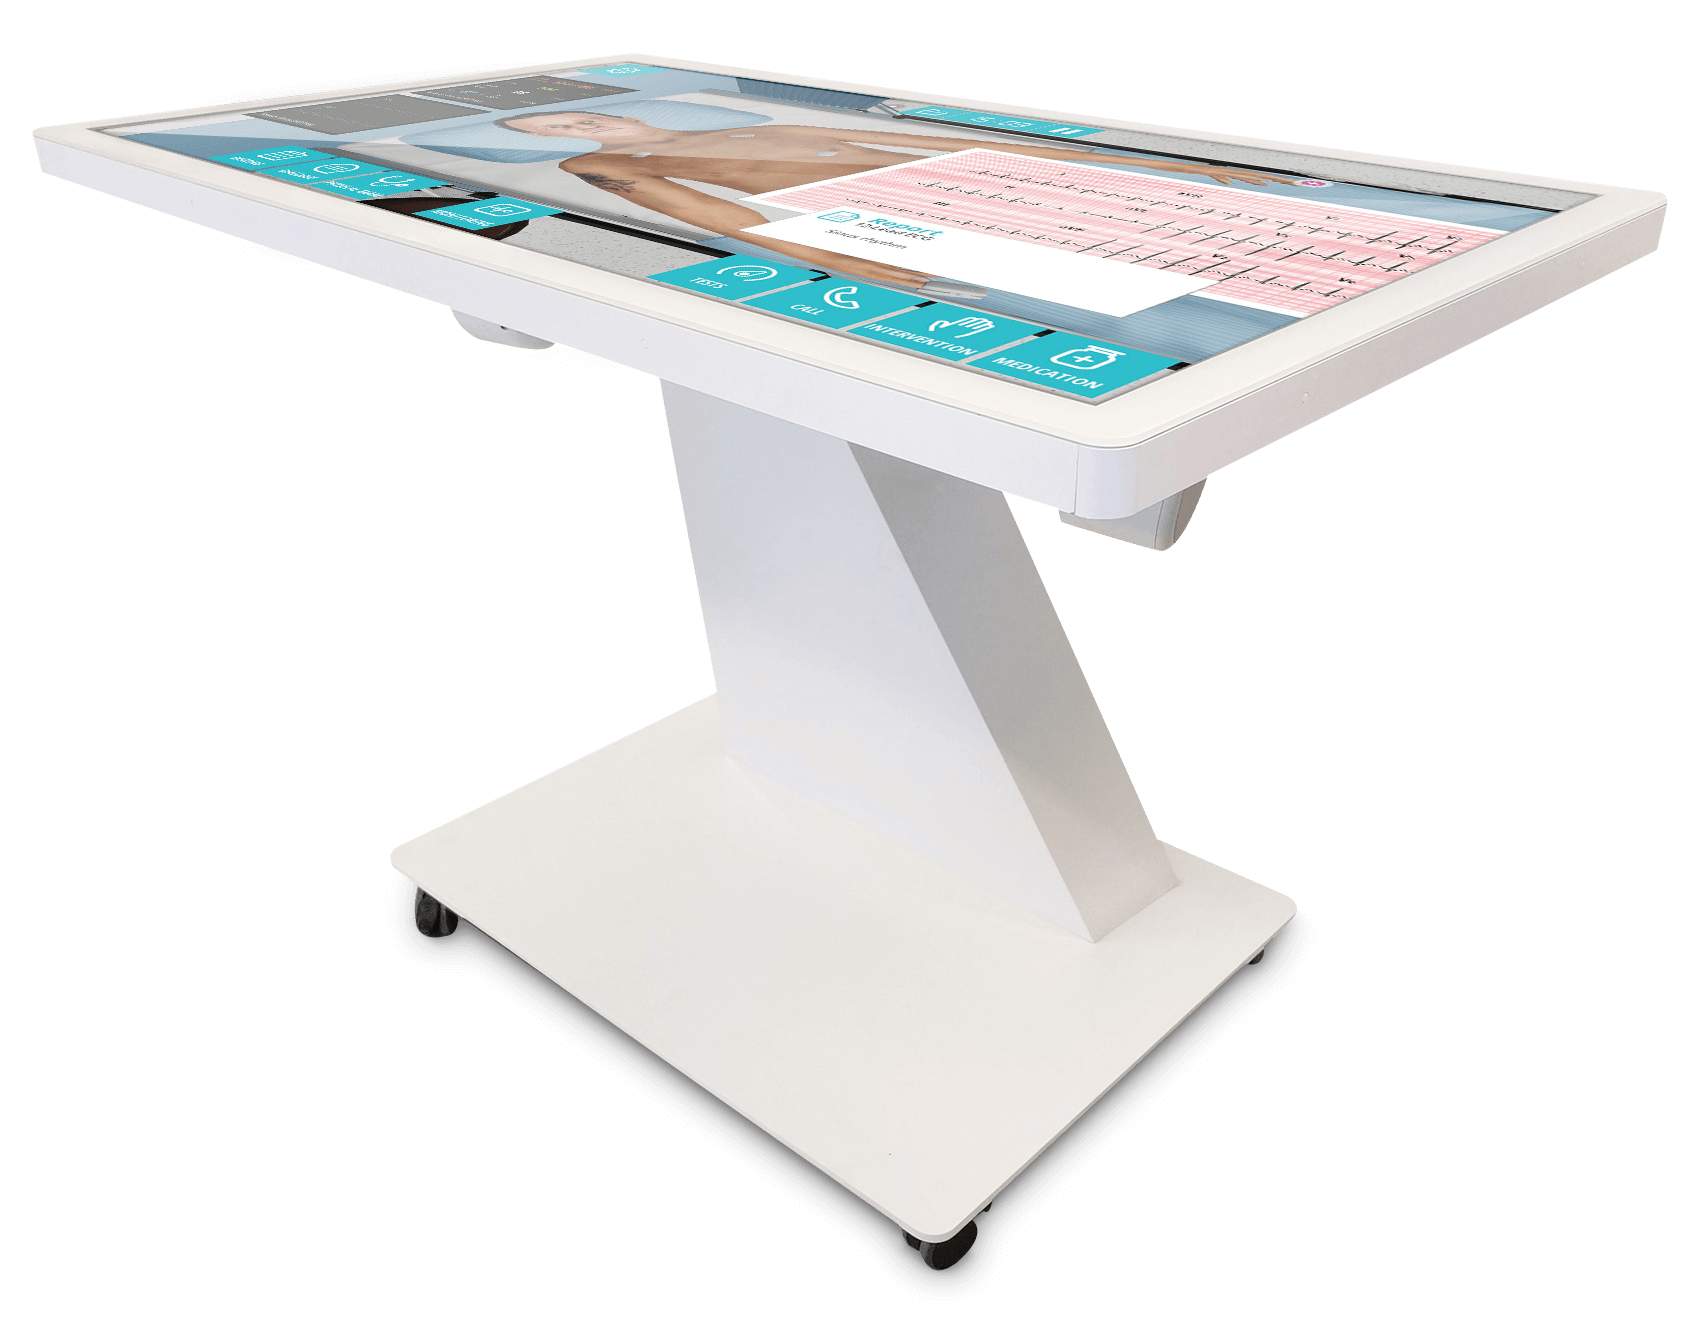 body-interact-table